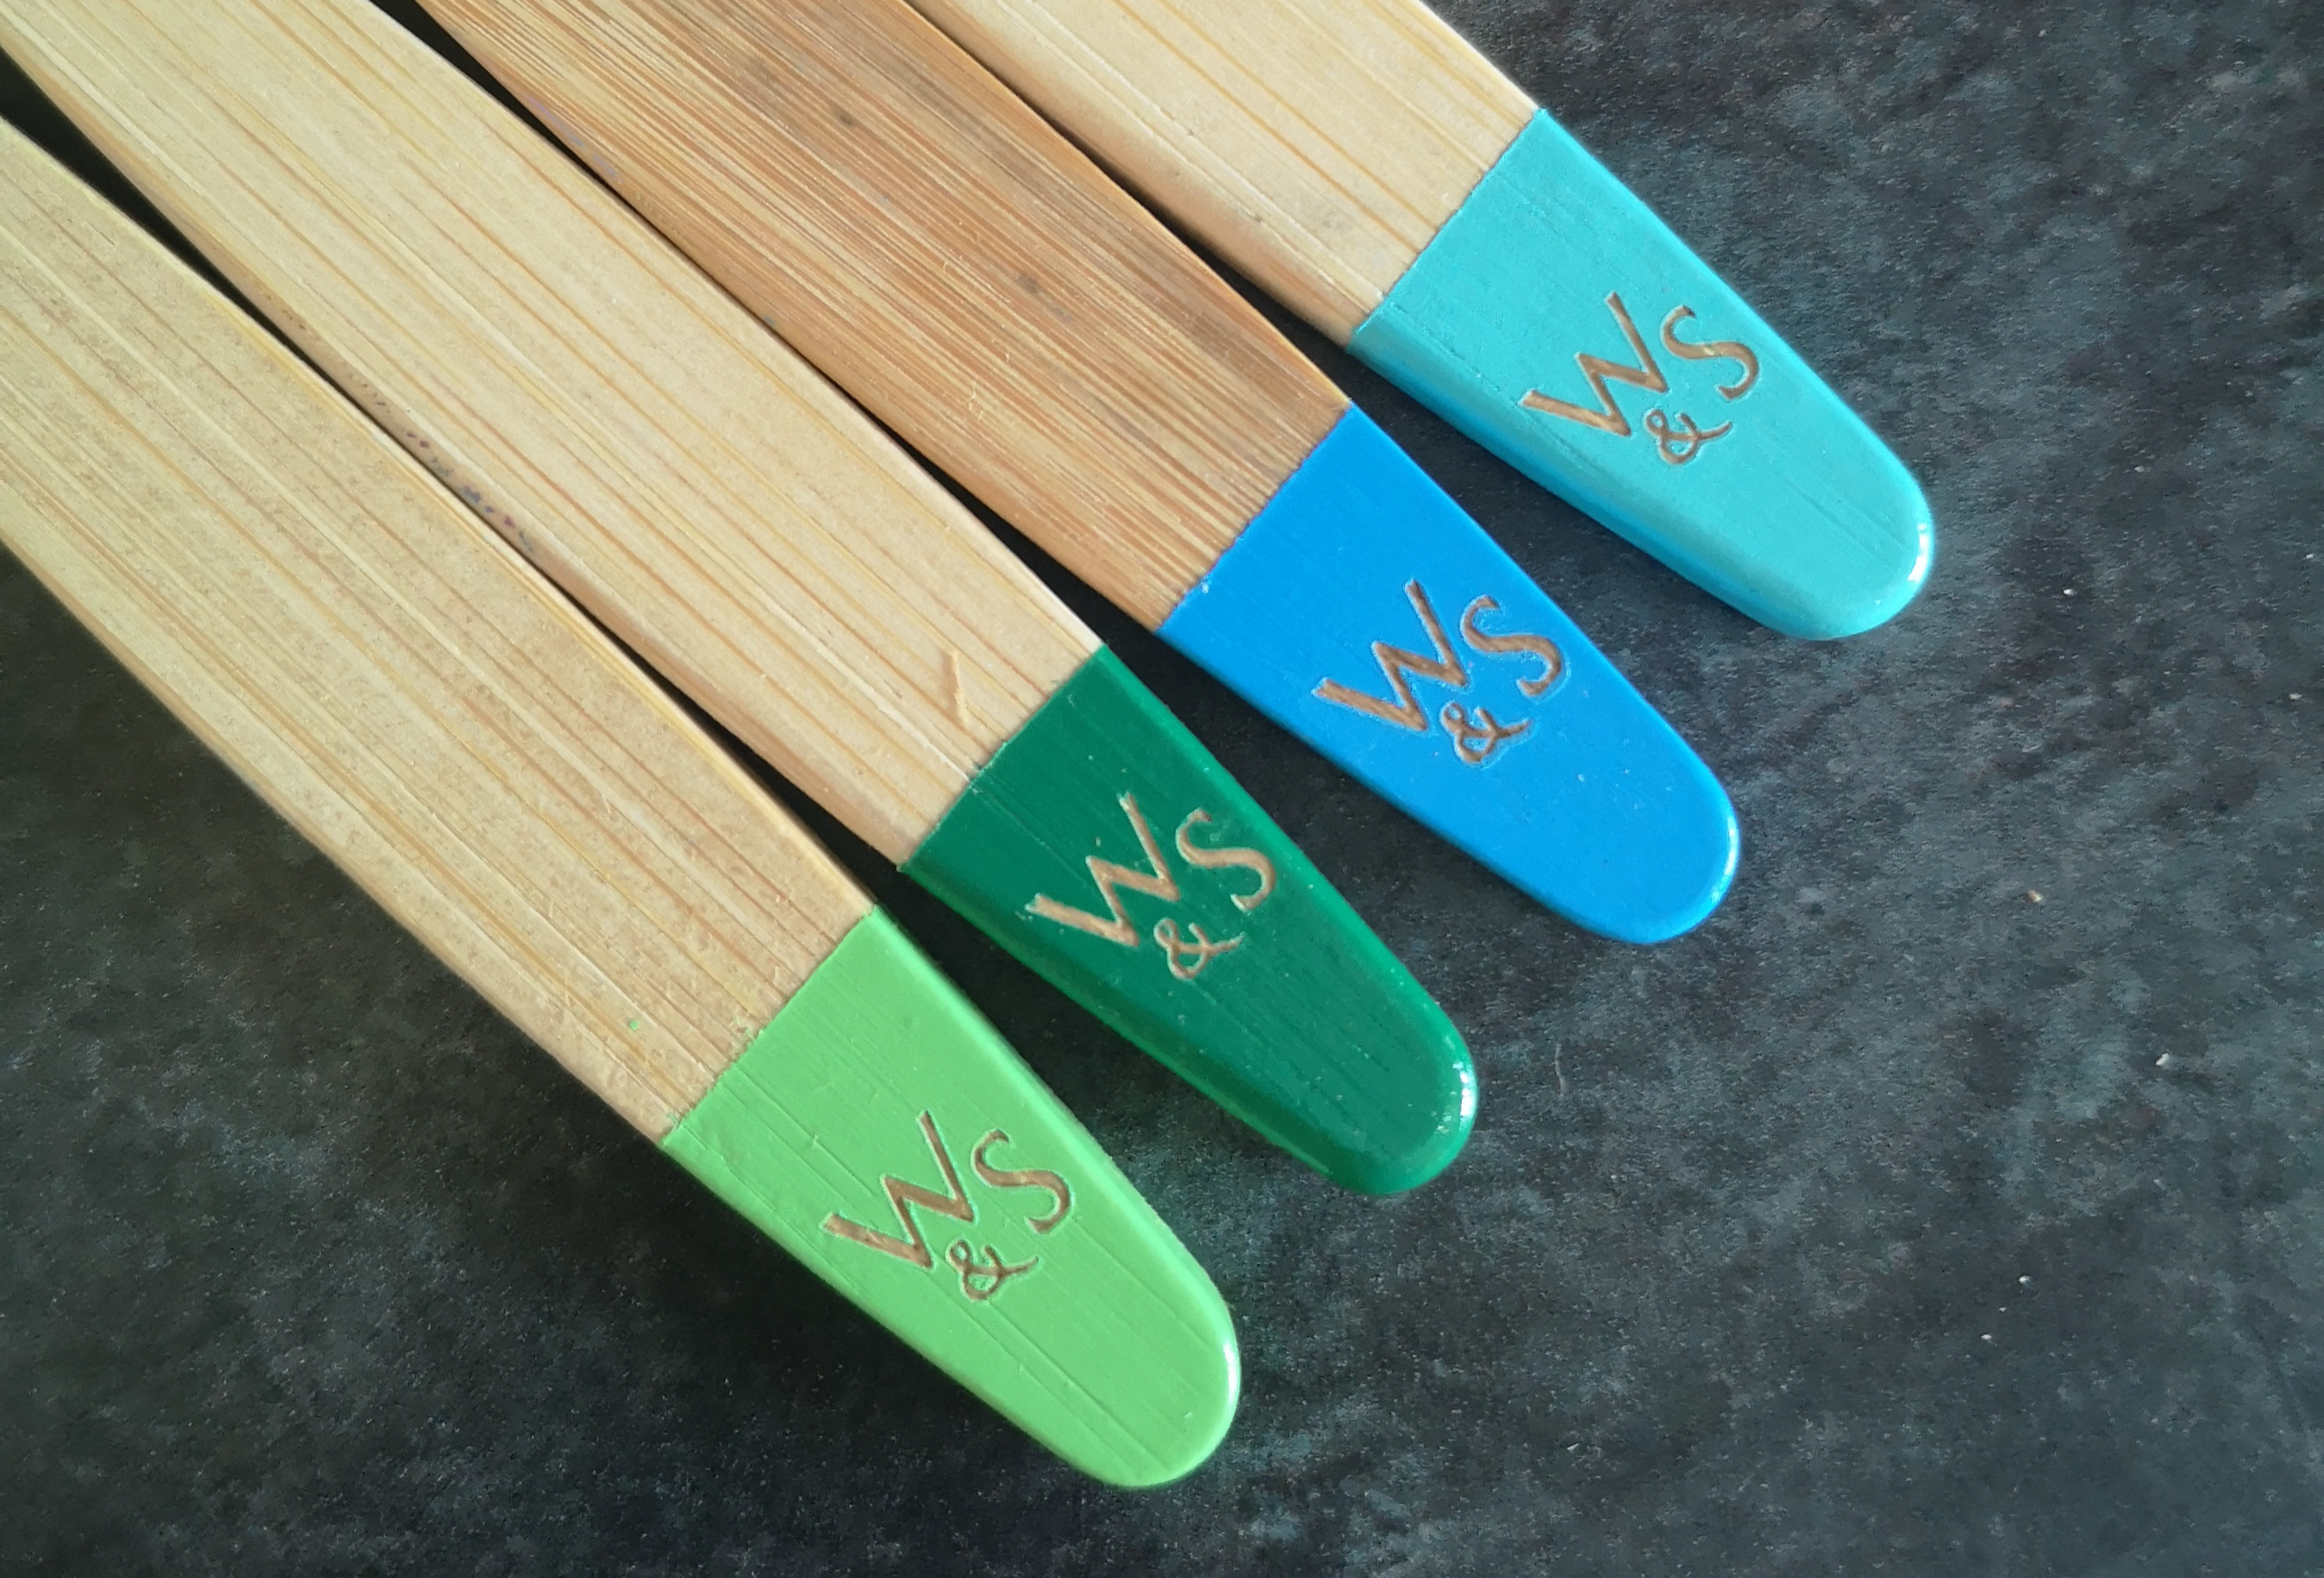 Wild & Stone Children's Toothbrushes Review